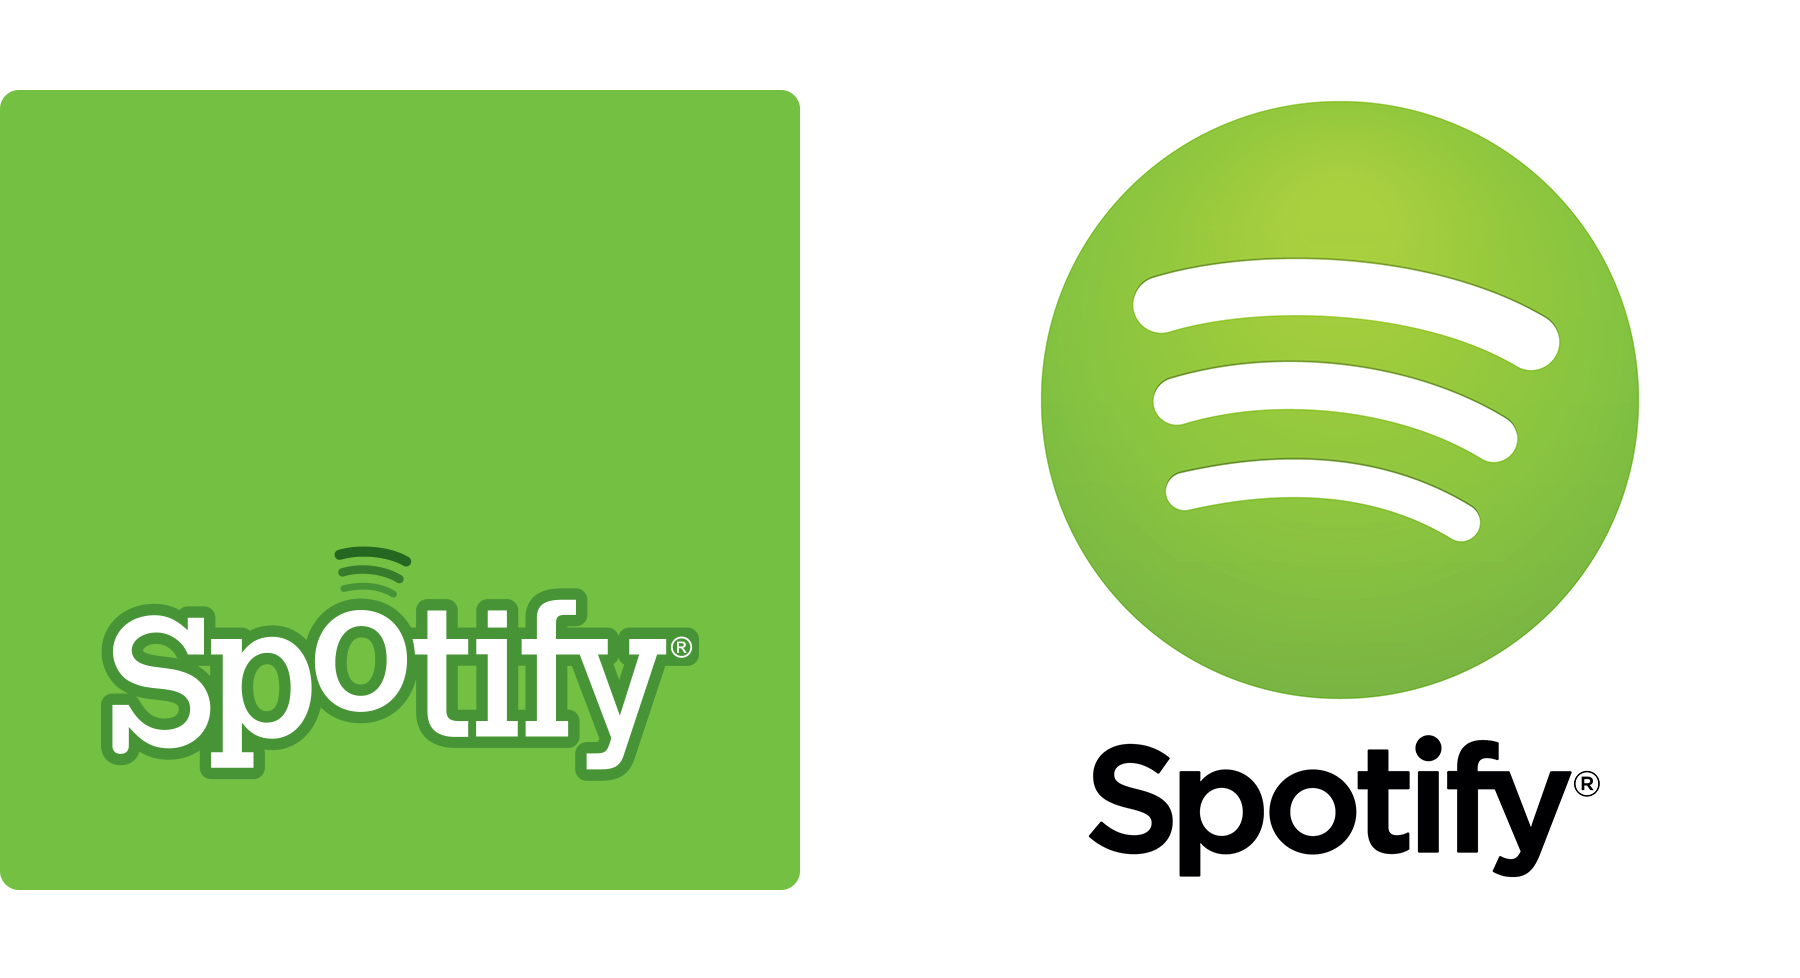 Spotify brand and website.